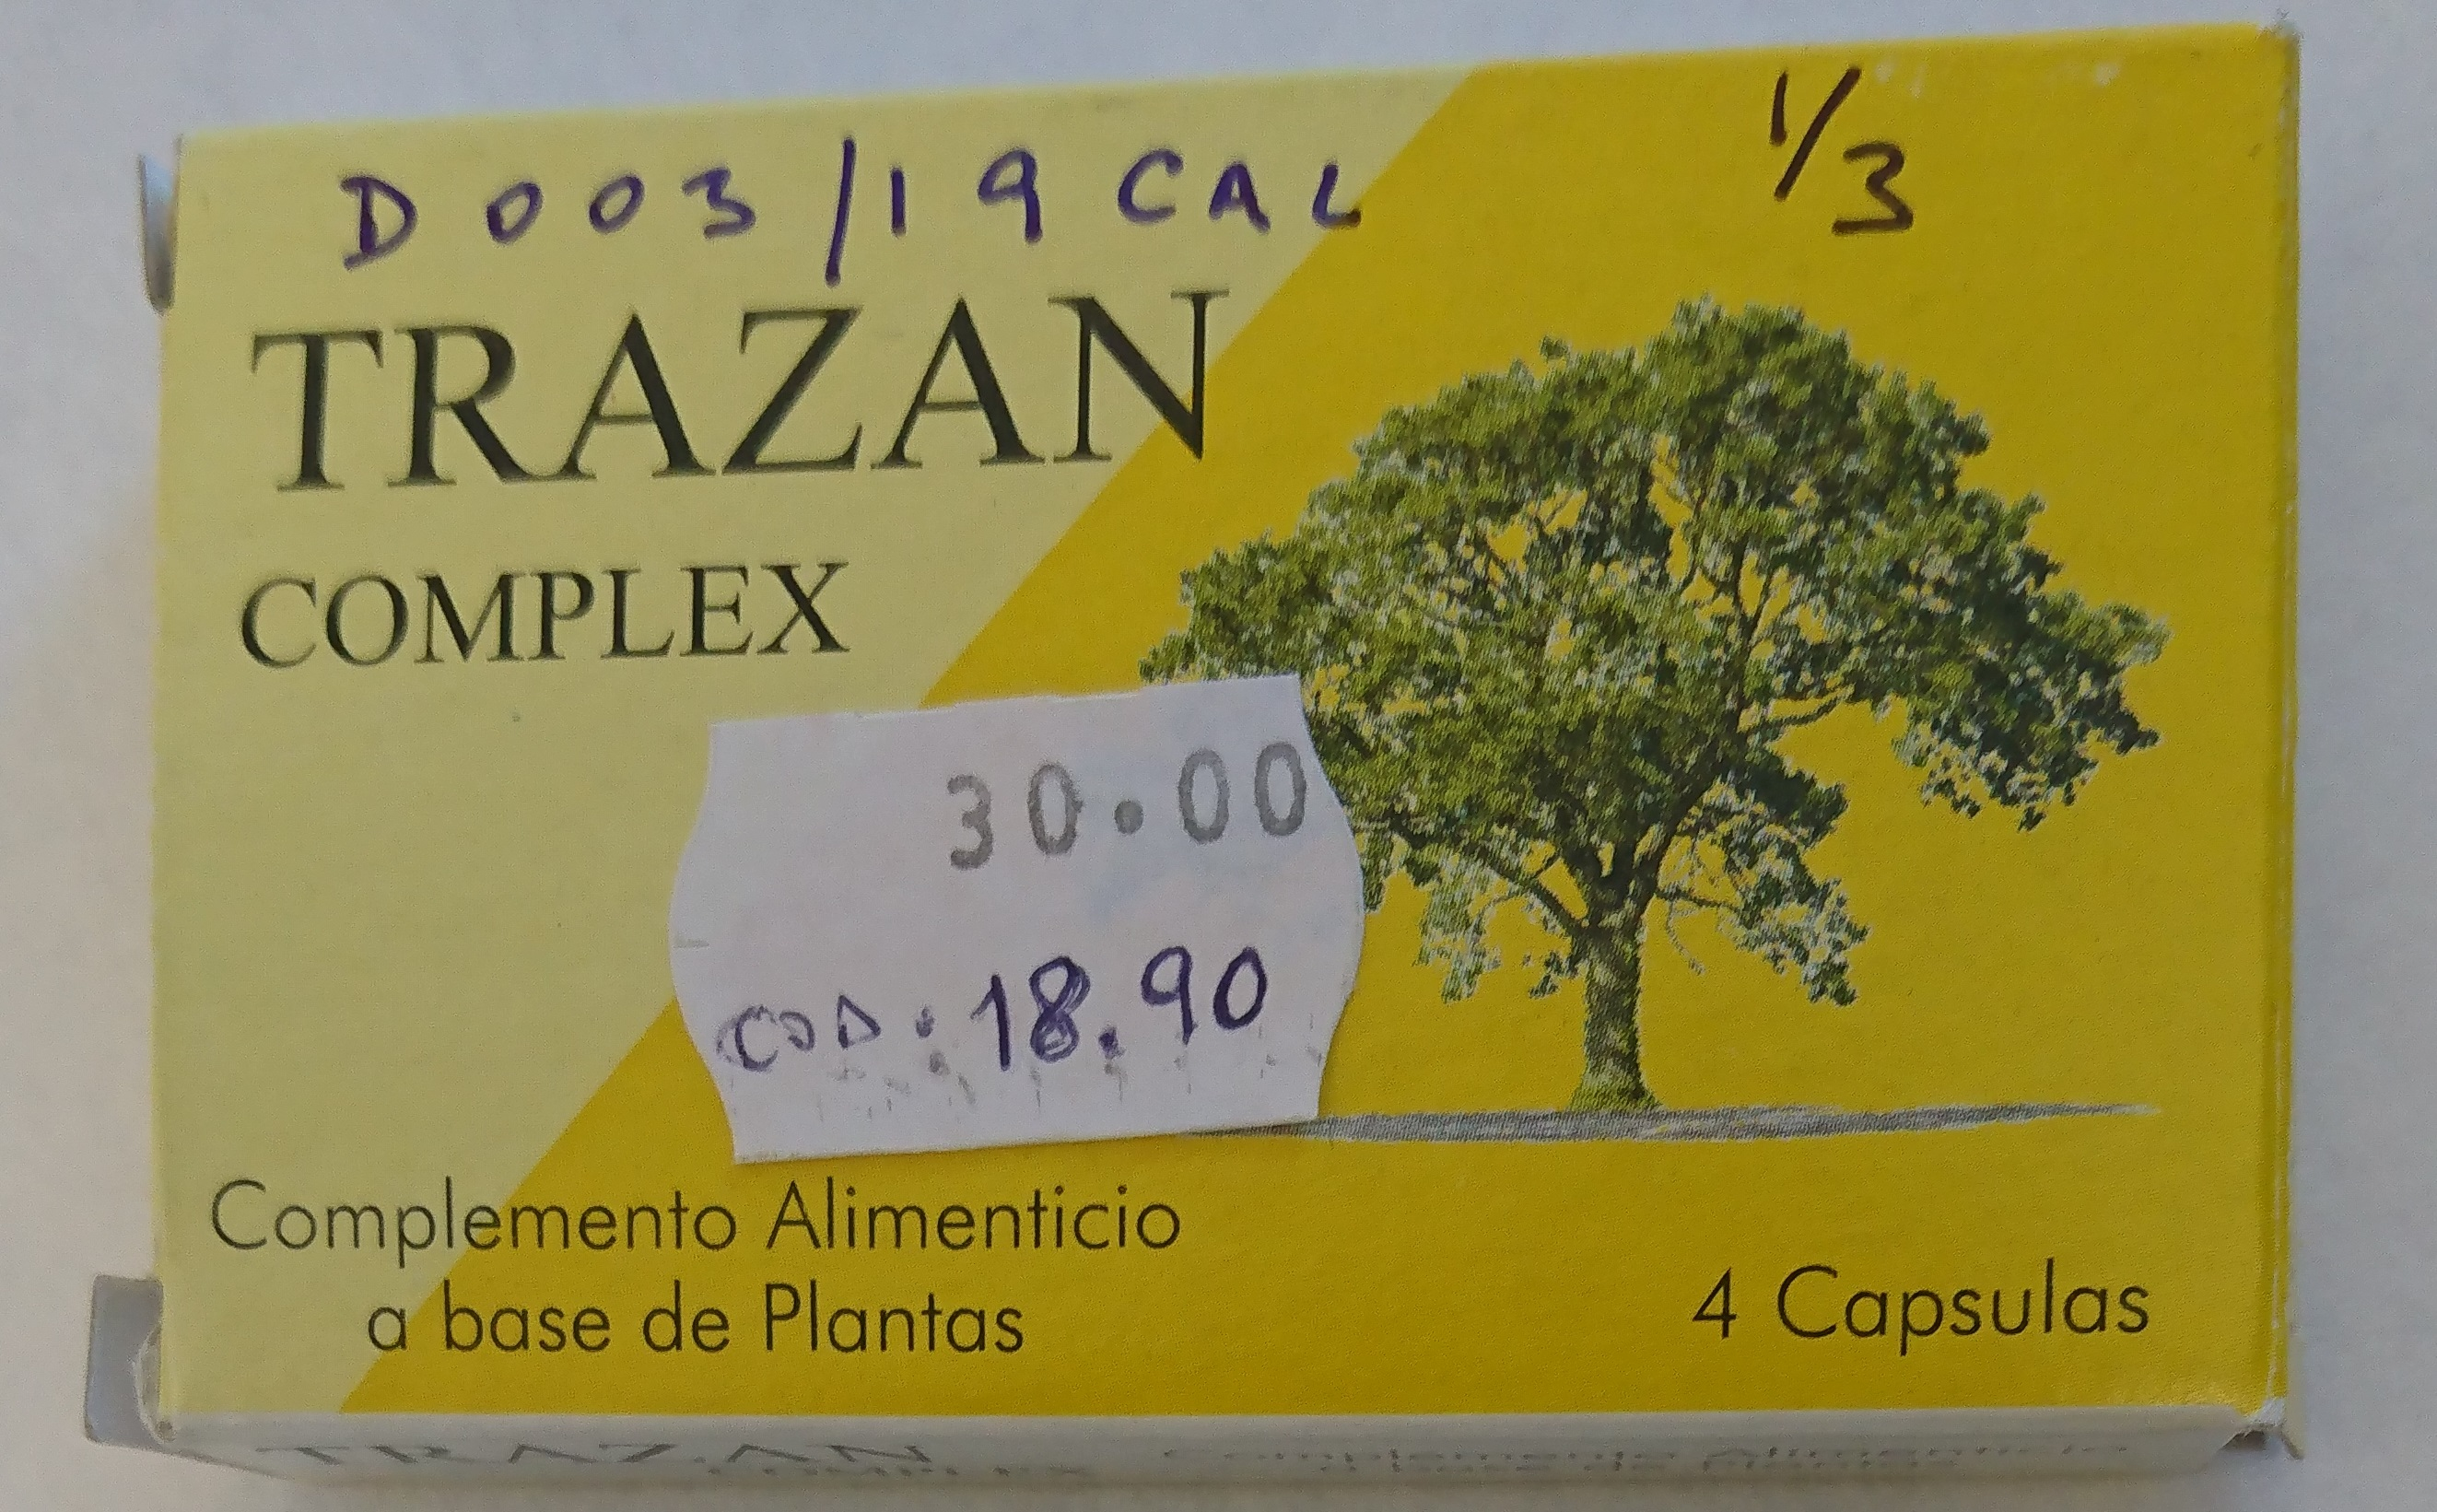 Image of the illigal product: Trazan Complex